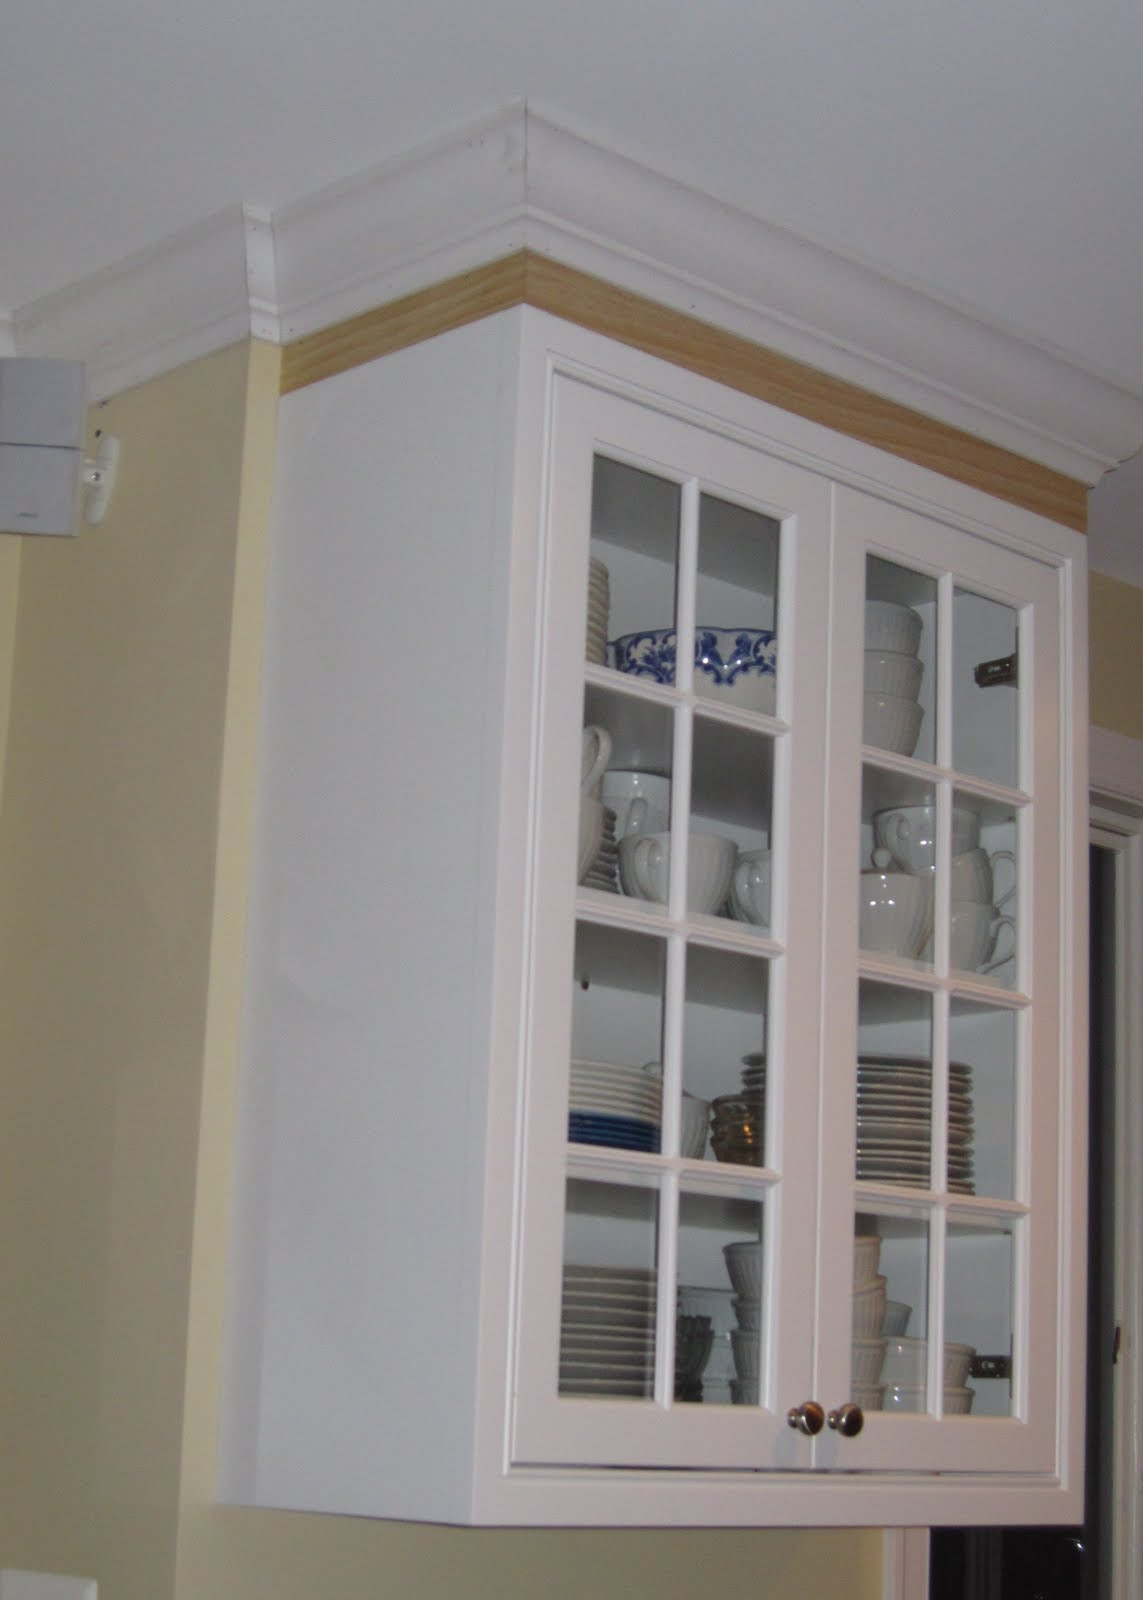 Decorative Molding Kitchen Cabinets How Much To Reface Houseography Crowning Glory Adding Crown In Our